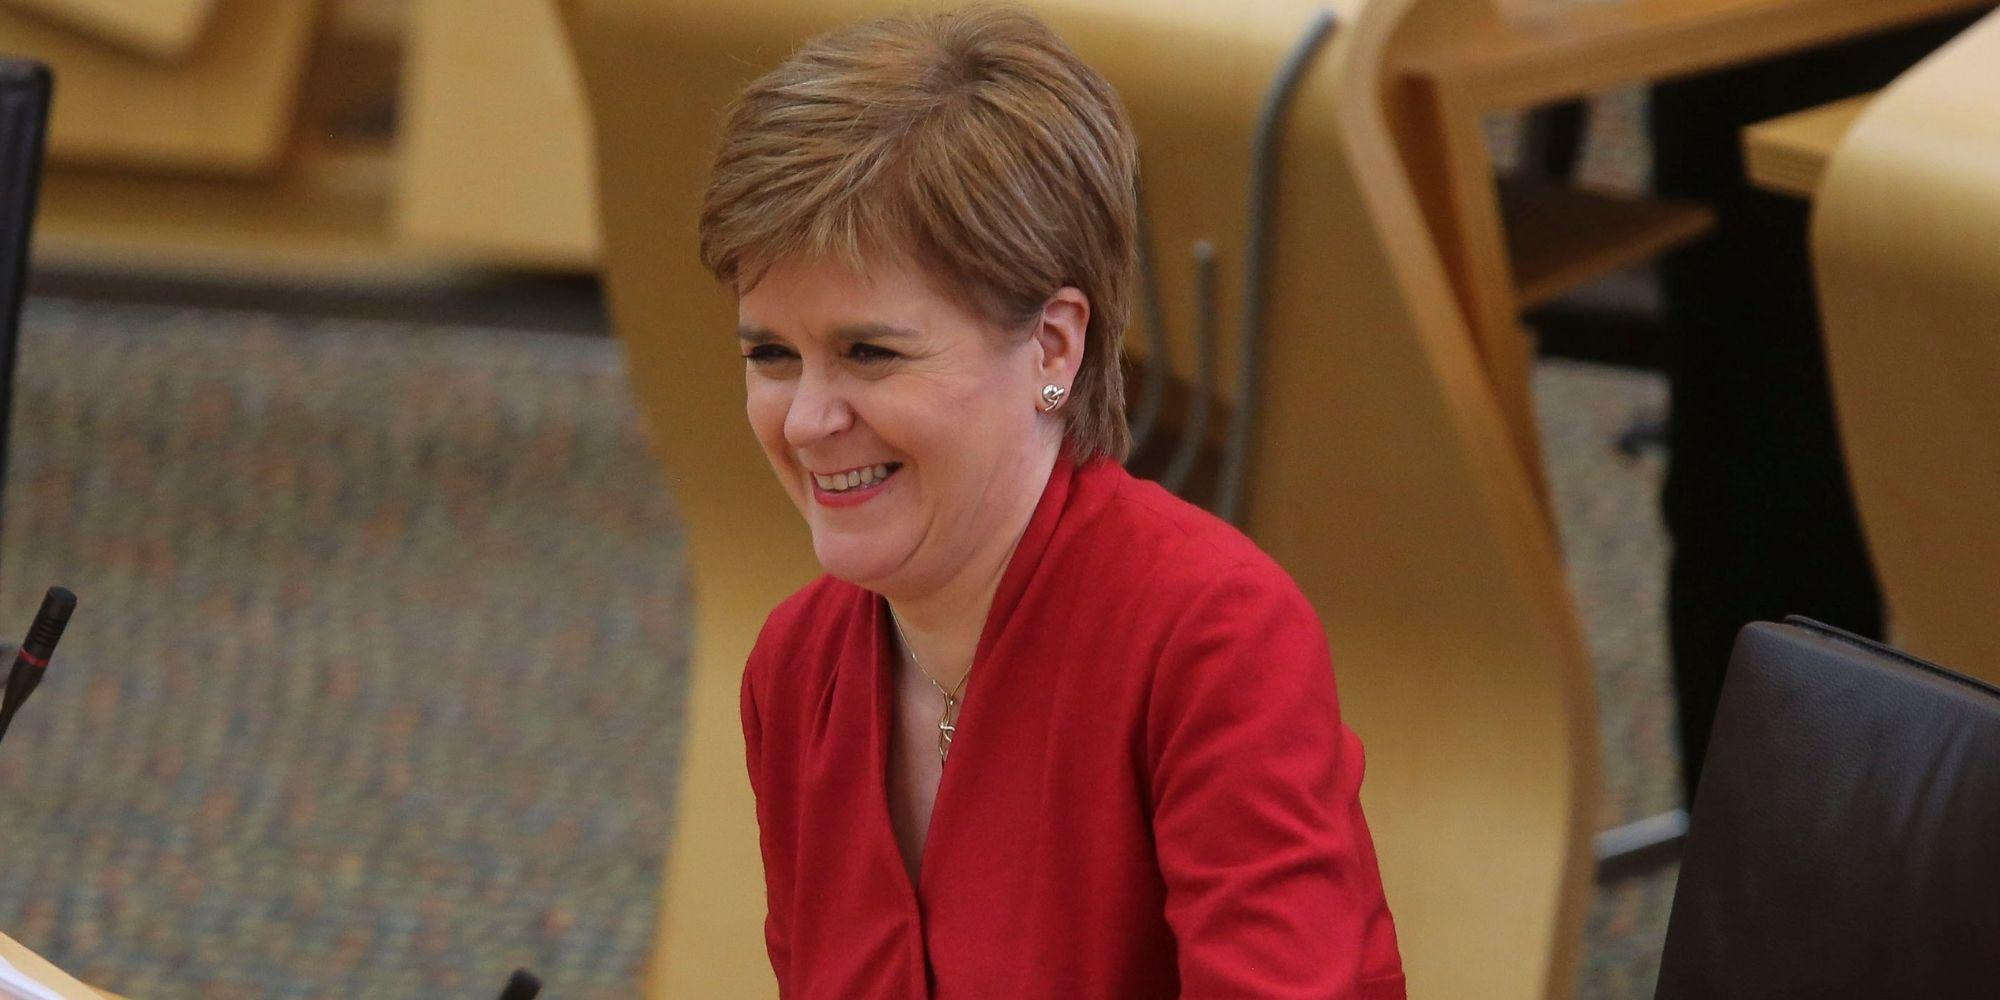 Nicola Sturgeon had the best response to this viral video of a 7-year-old boy impersonating her